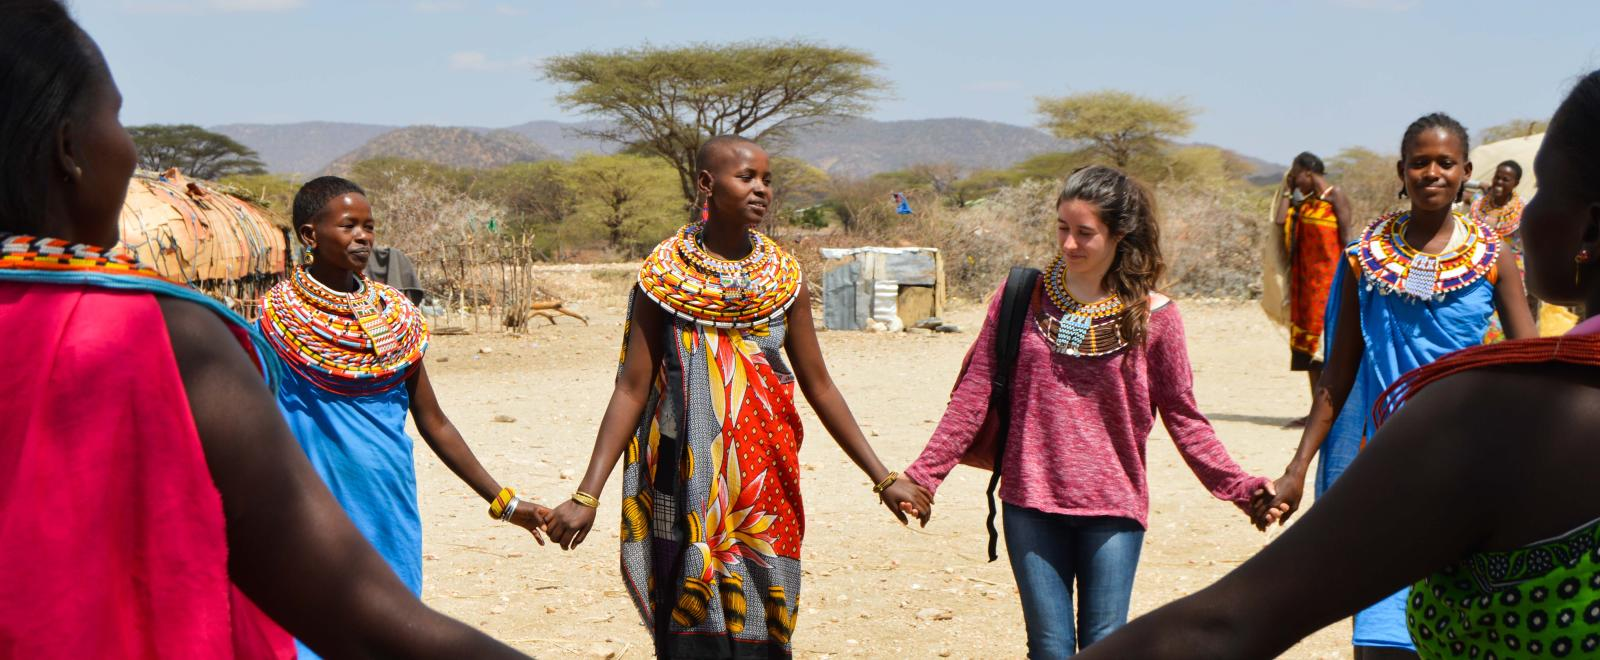 traveller holds hands with a Samuru tribe member as part of her Discovery Tour in Kenya.